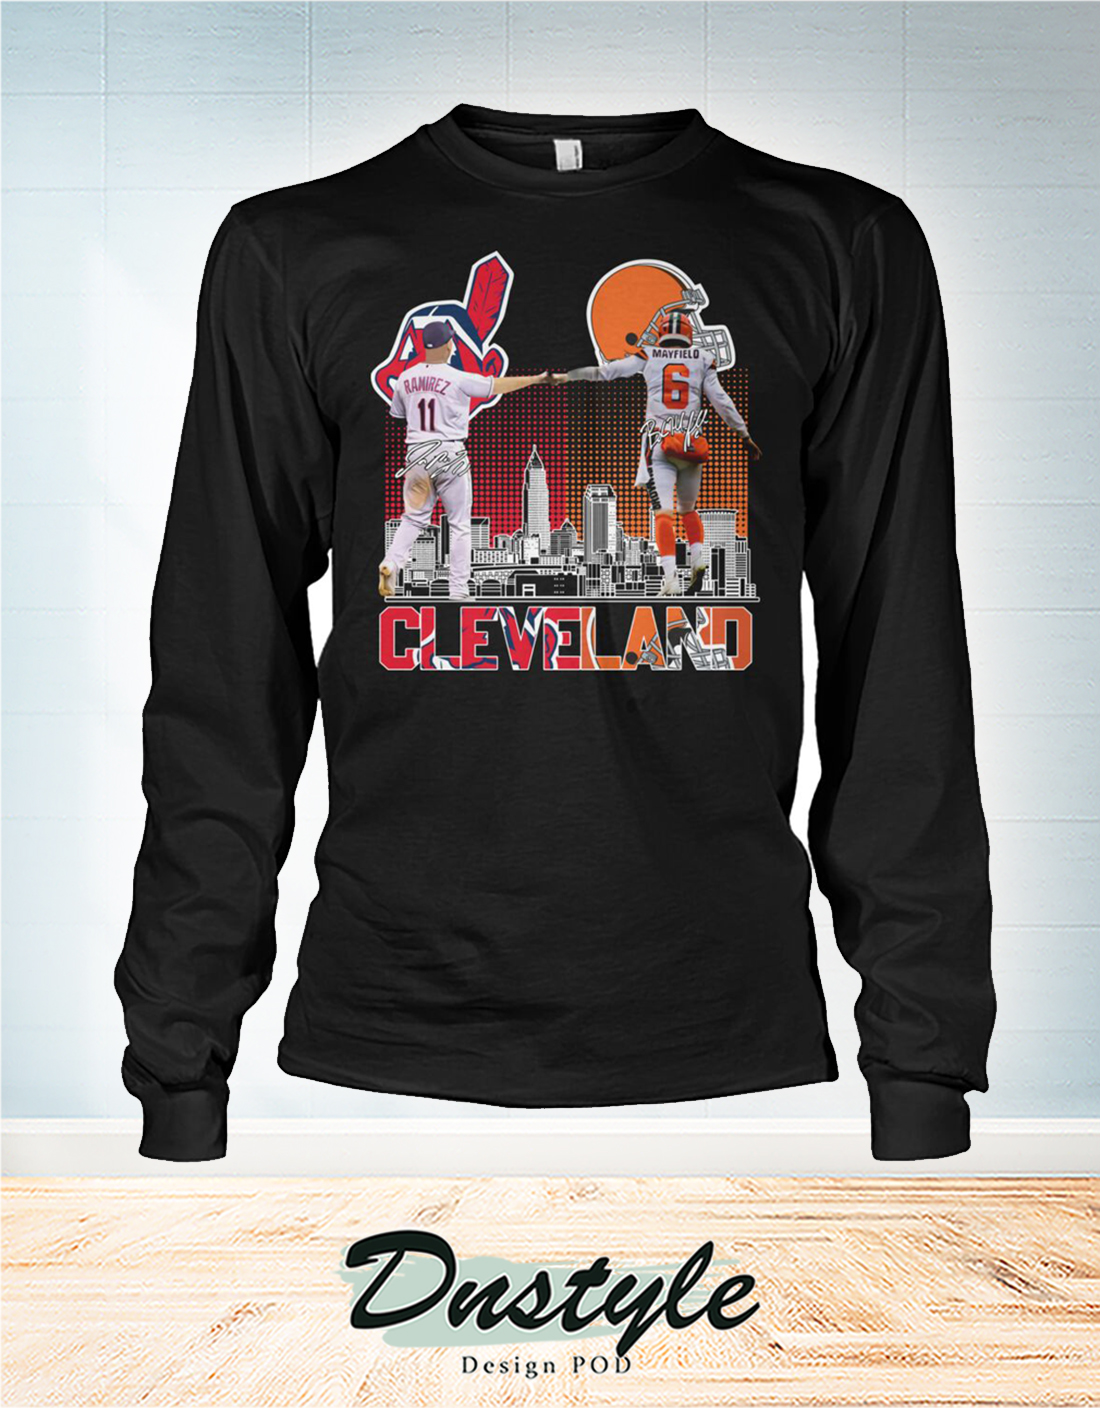 Cleveland Indians and Browns Ramirez and Mayfield long sleeve